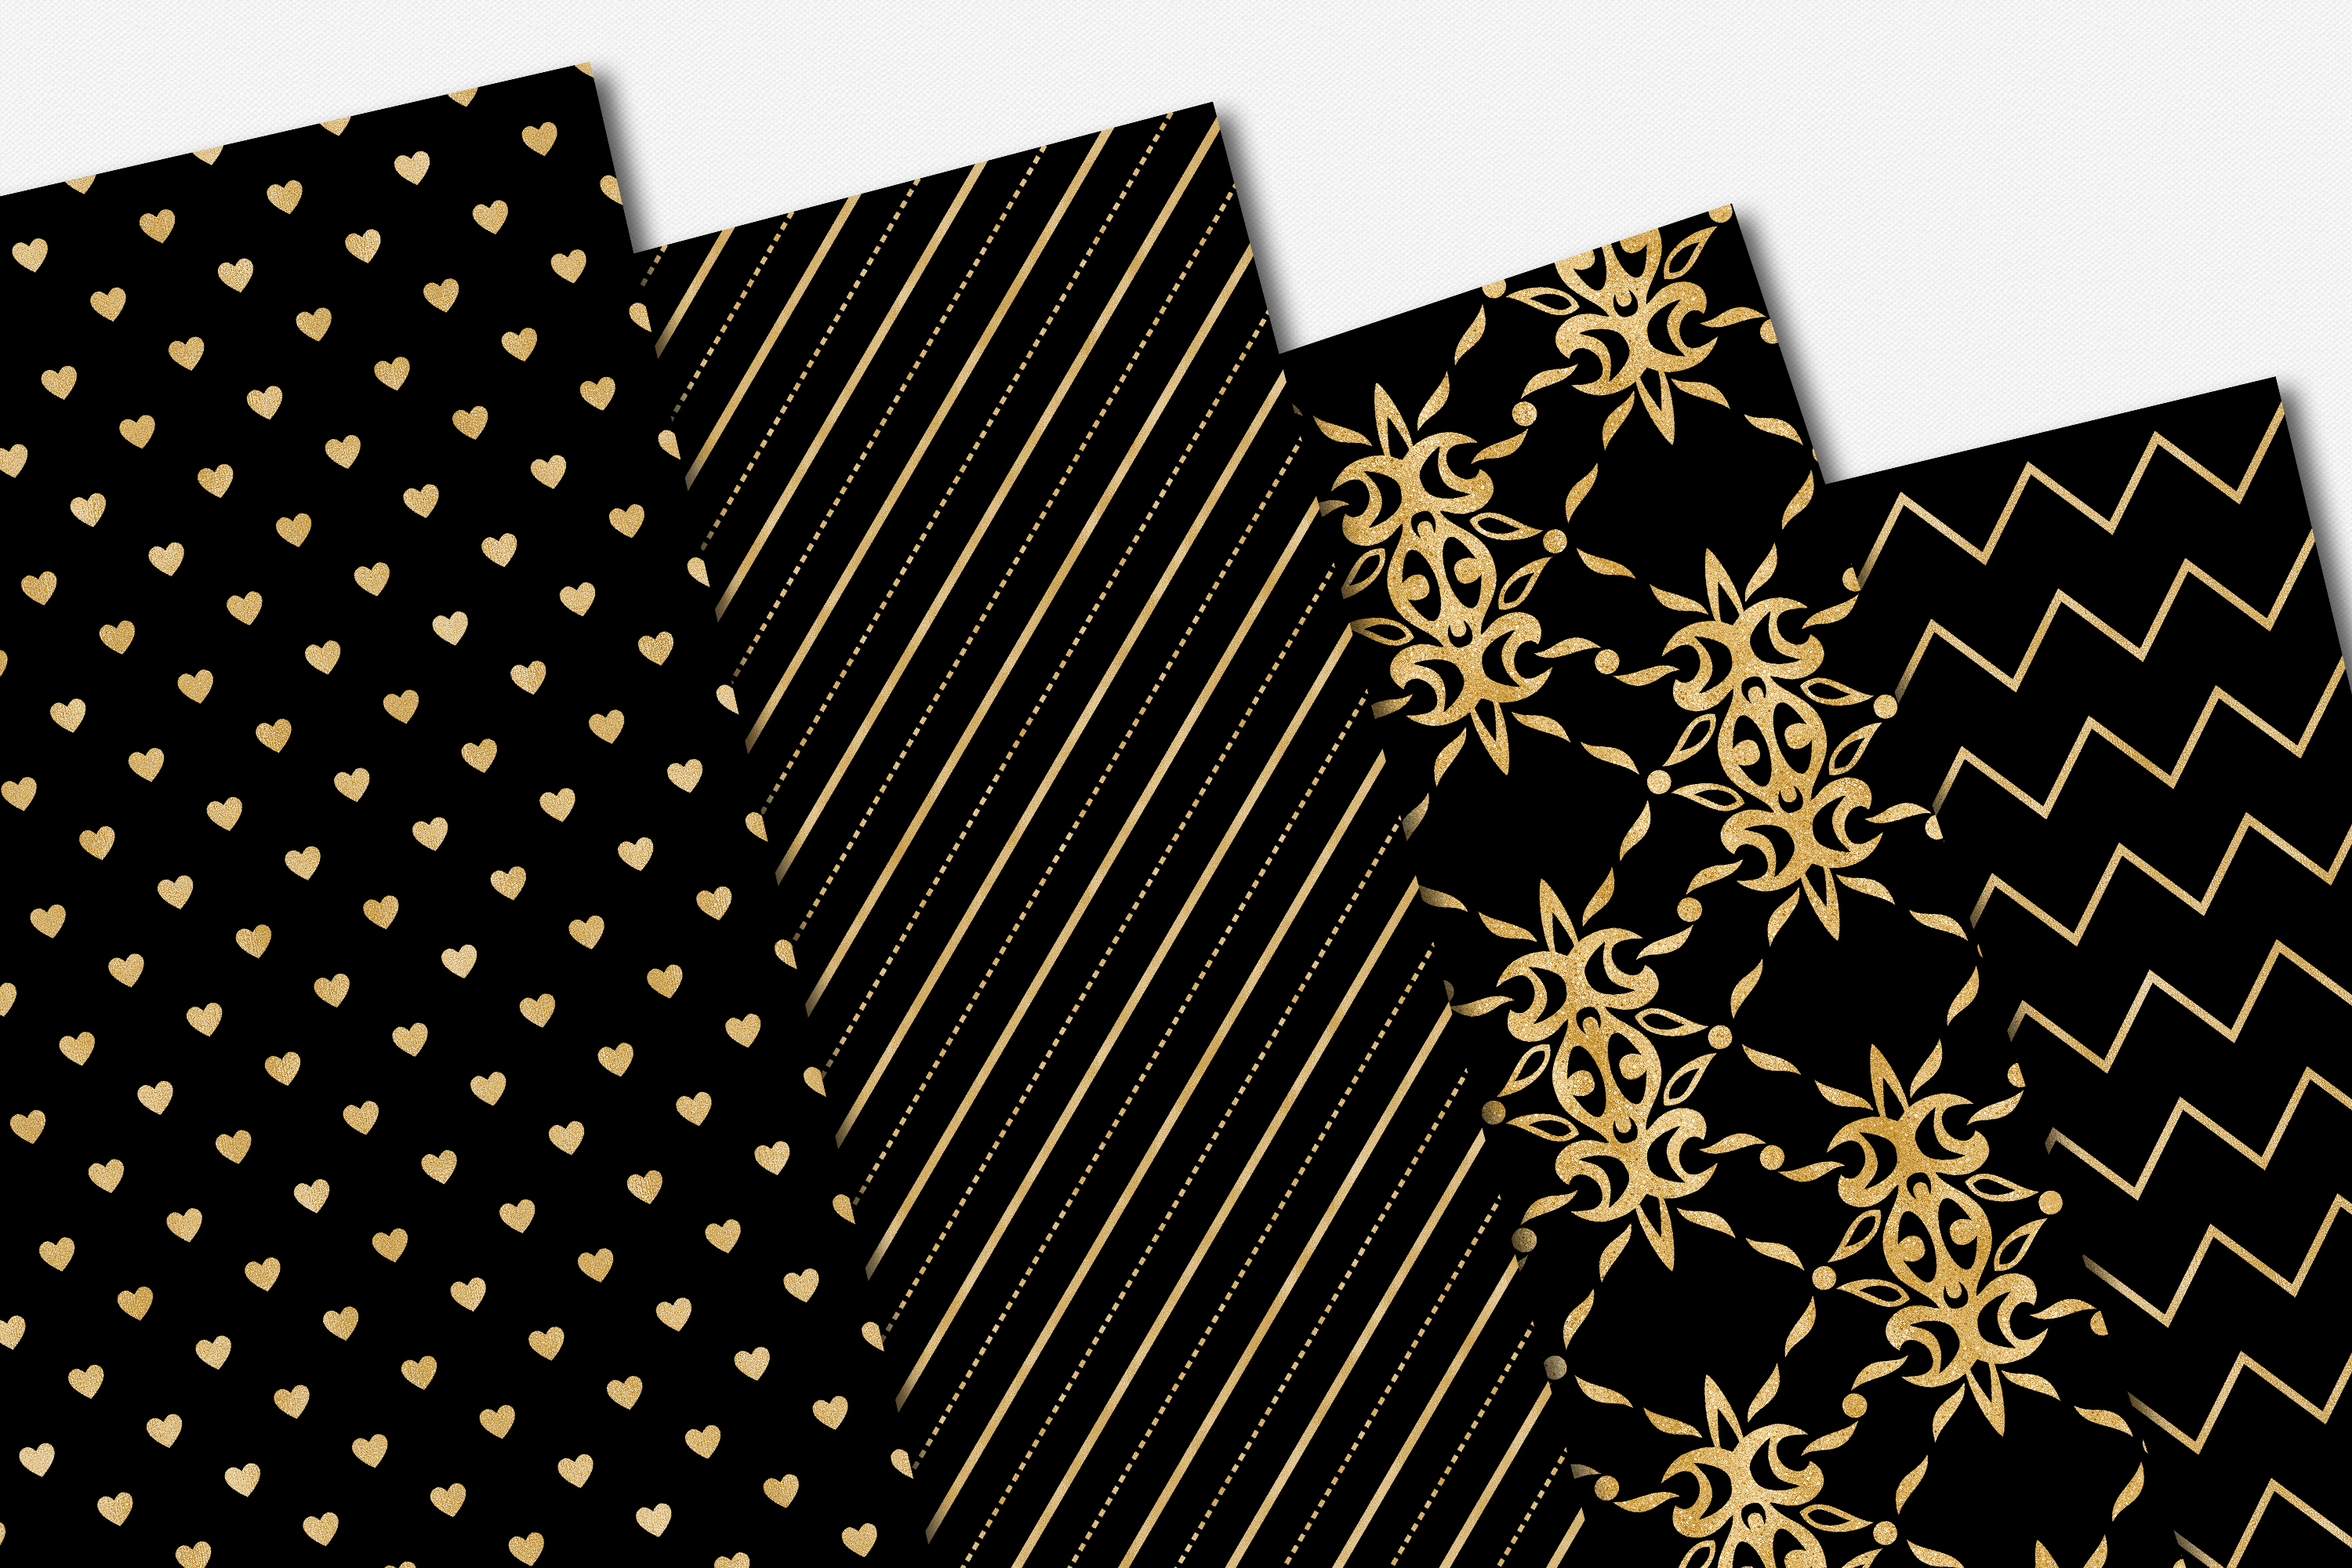 Black and Gold Seamless Papers - Damask & Geometric Patterns example image 7